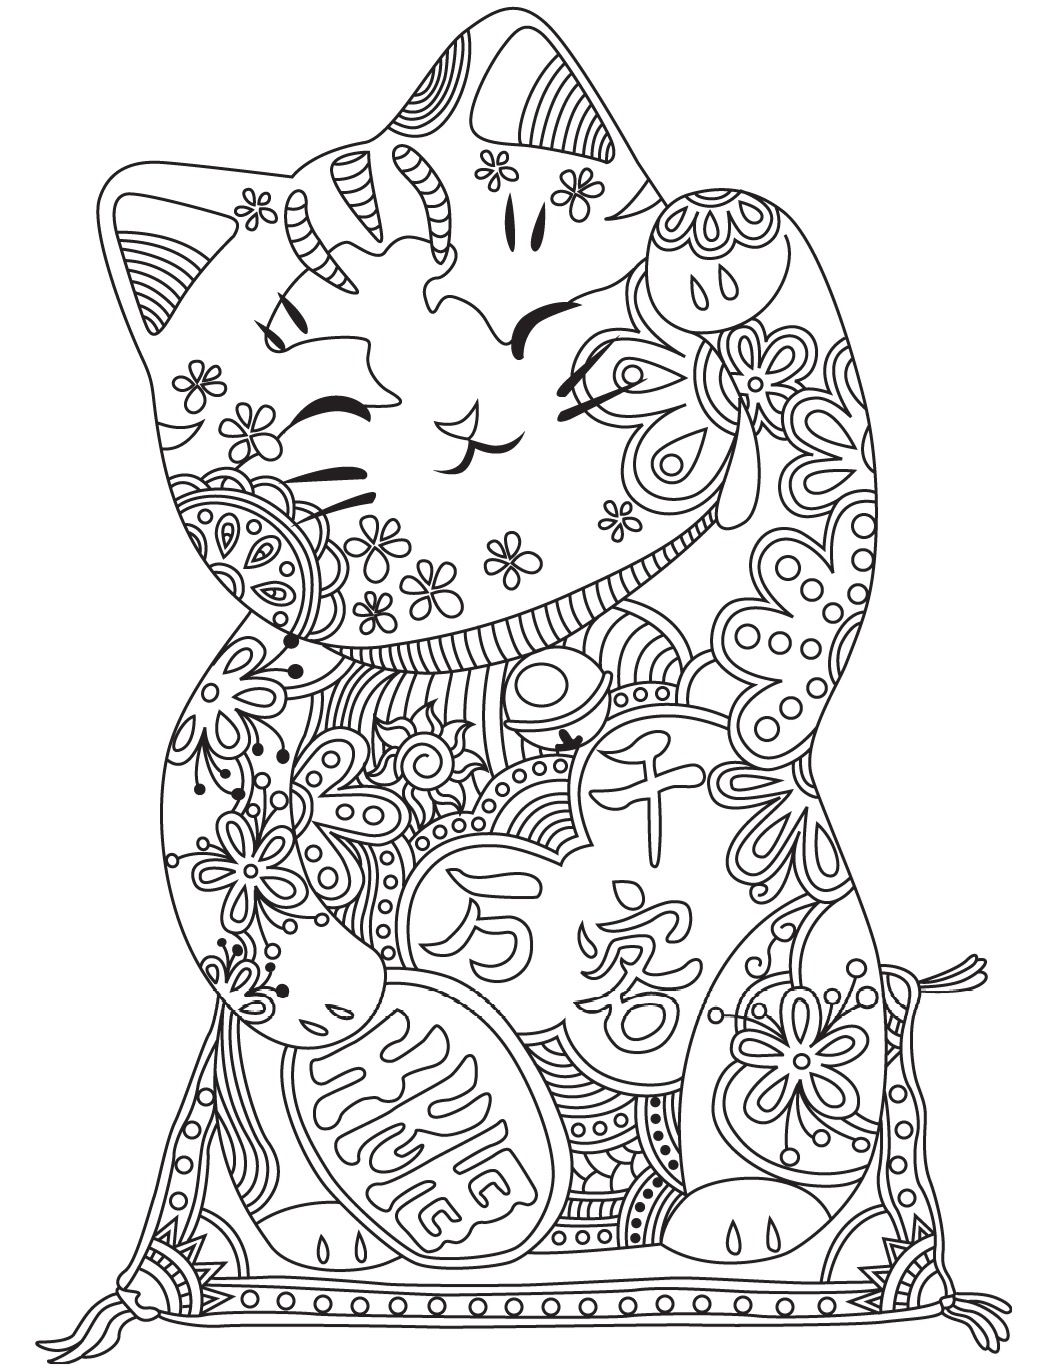 Japanese Cat | Colorish: coloring book for adults mandala ...